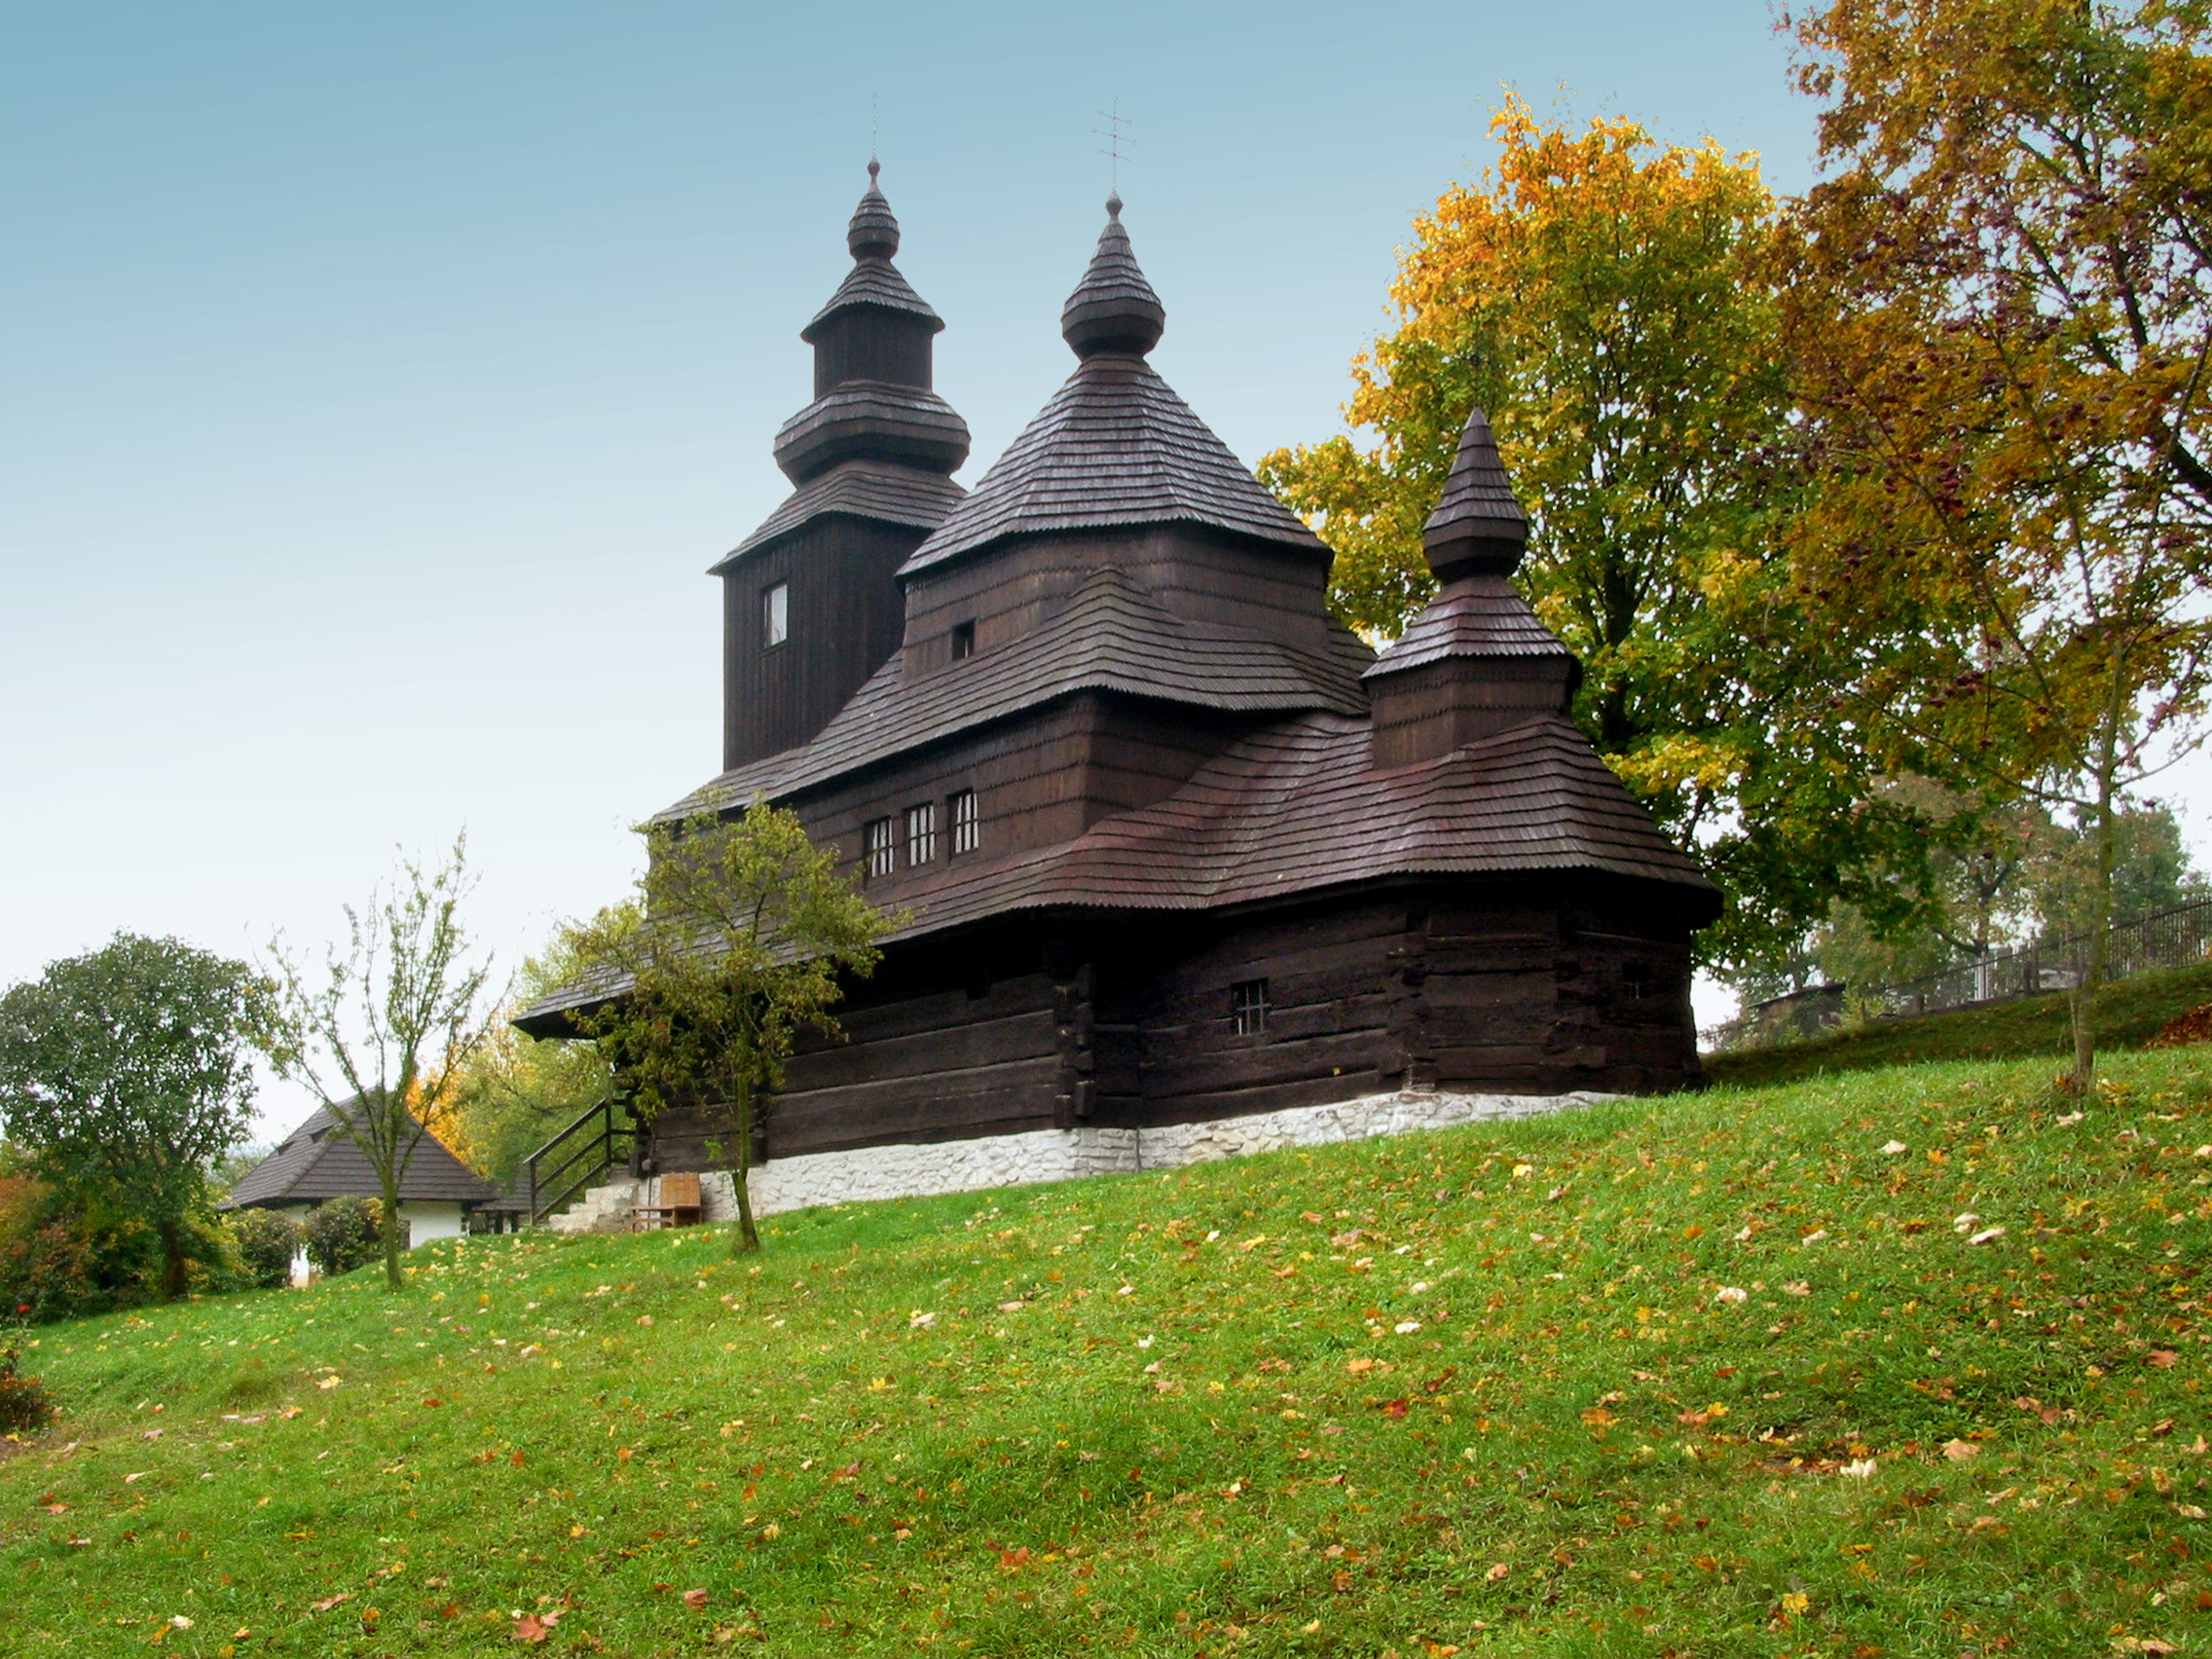 Greek Catholic Wooden Church of St Michael the Archangel, Humenné (Monuments Board of the SR Archive, photo by Peter Fratrič)